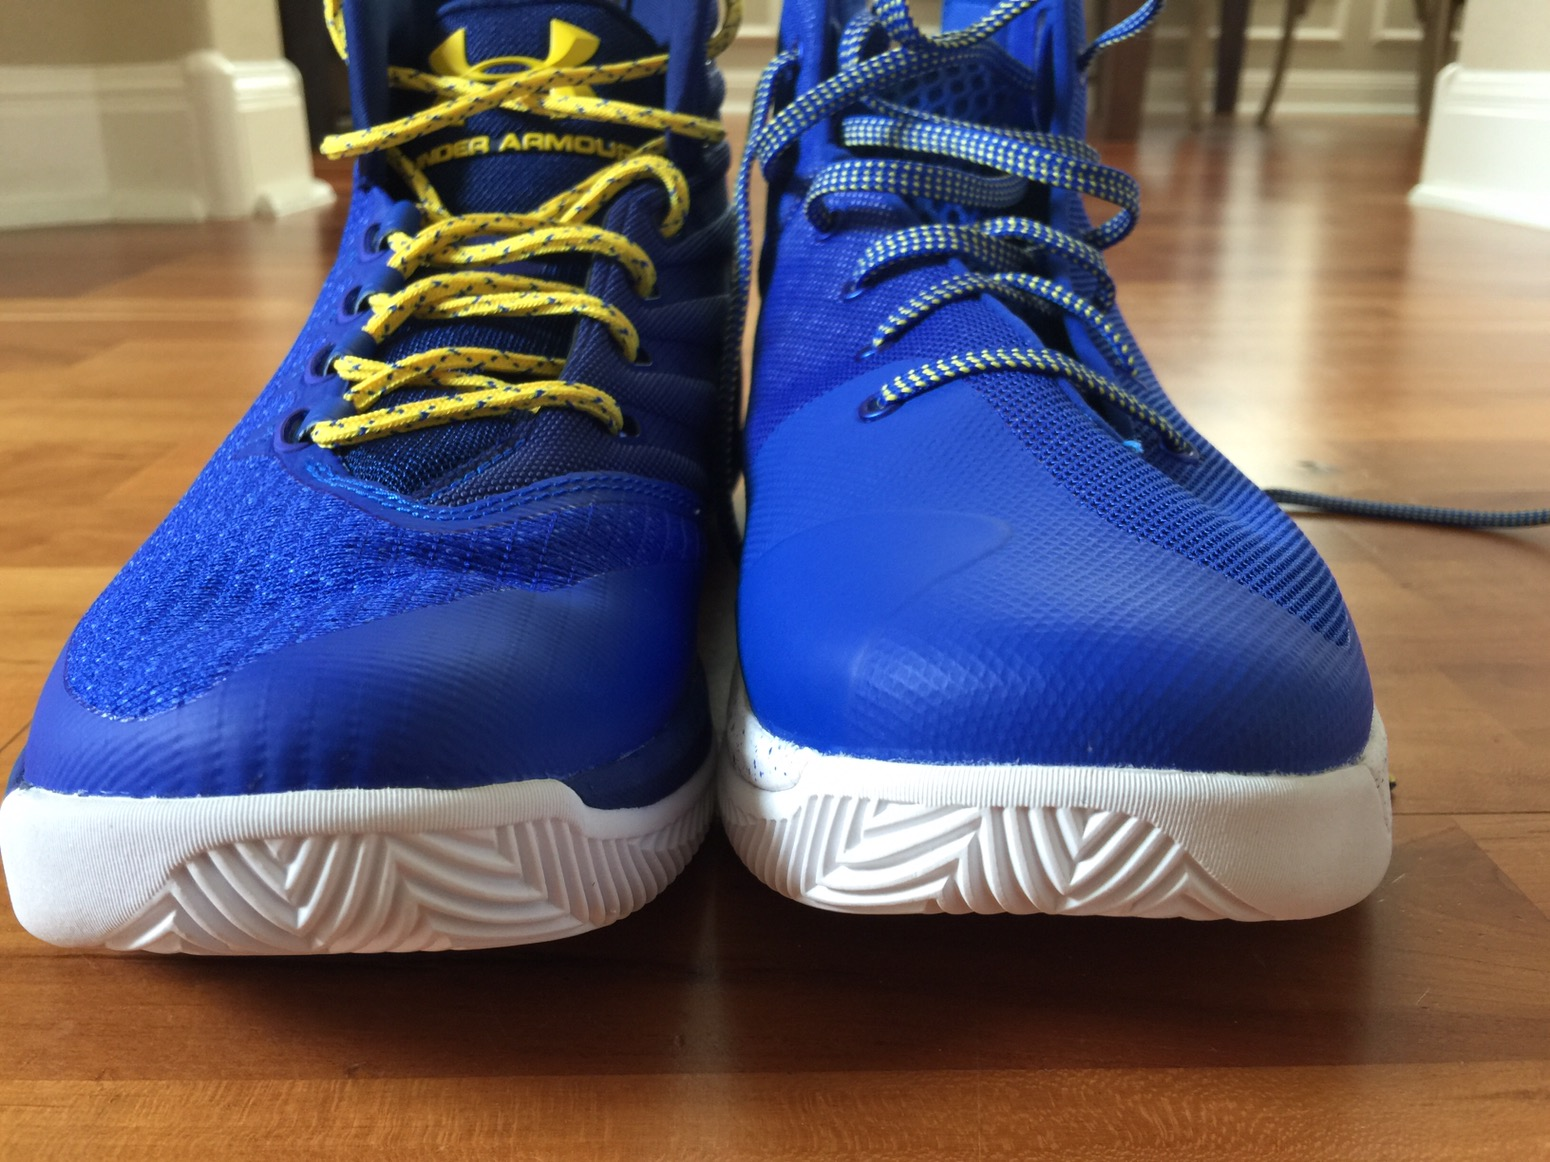 aceb3db6c867 The Curry 3 is made for a specific player while the other is basically team  shoe made to fit a lot of different players  feet.